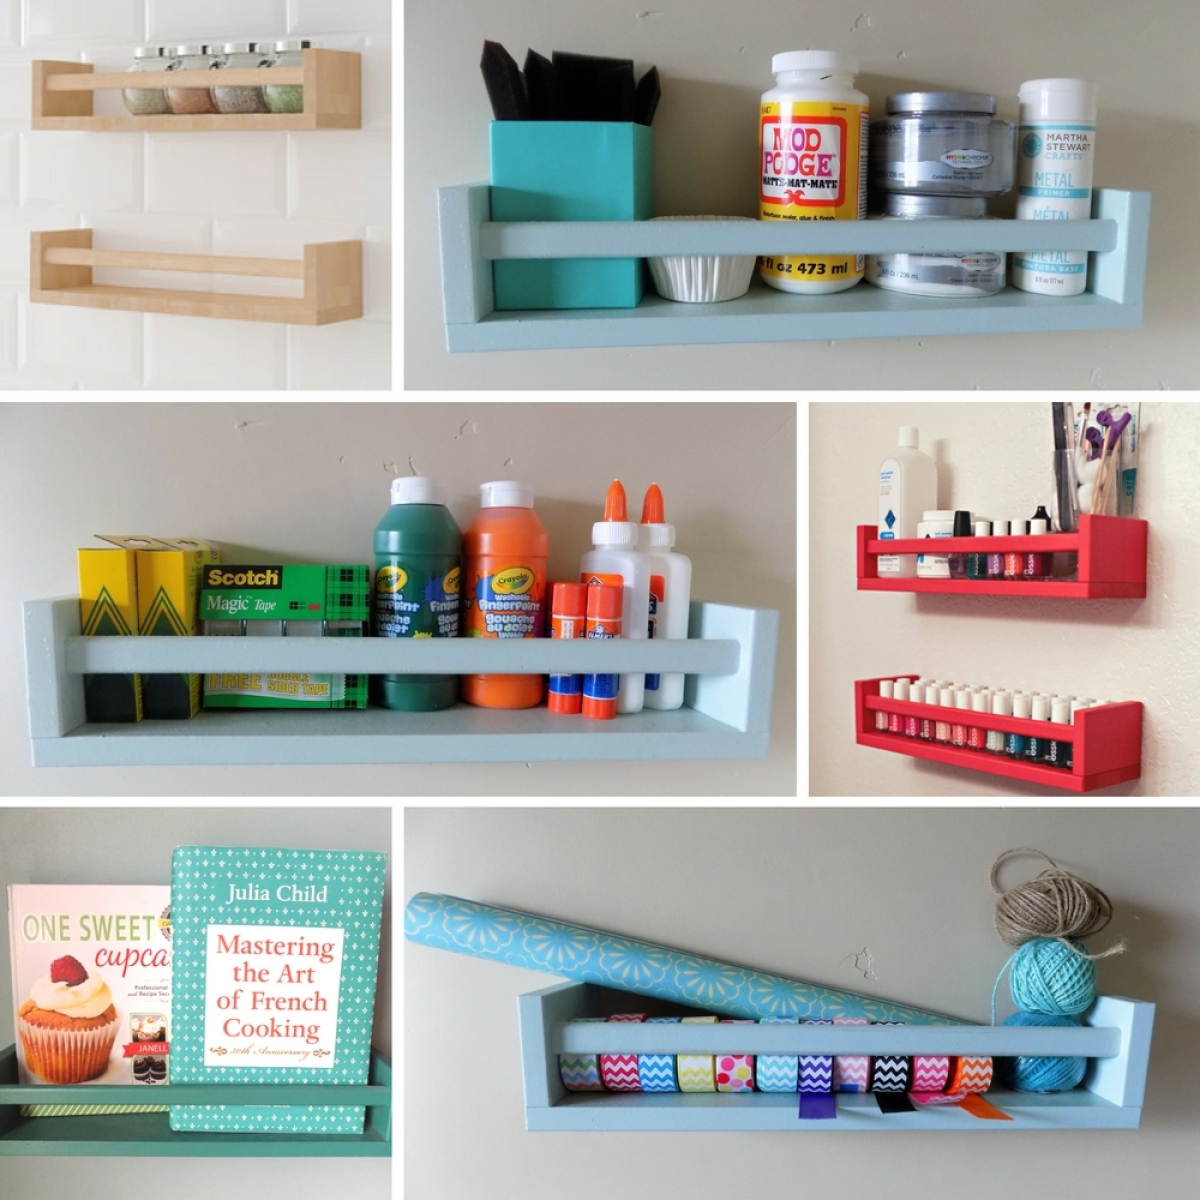 Ikea Bekvam Spice Rack Hack: Anyone Have An IKEA Obsession? We Are Here To Feed It